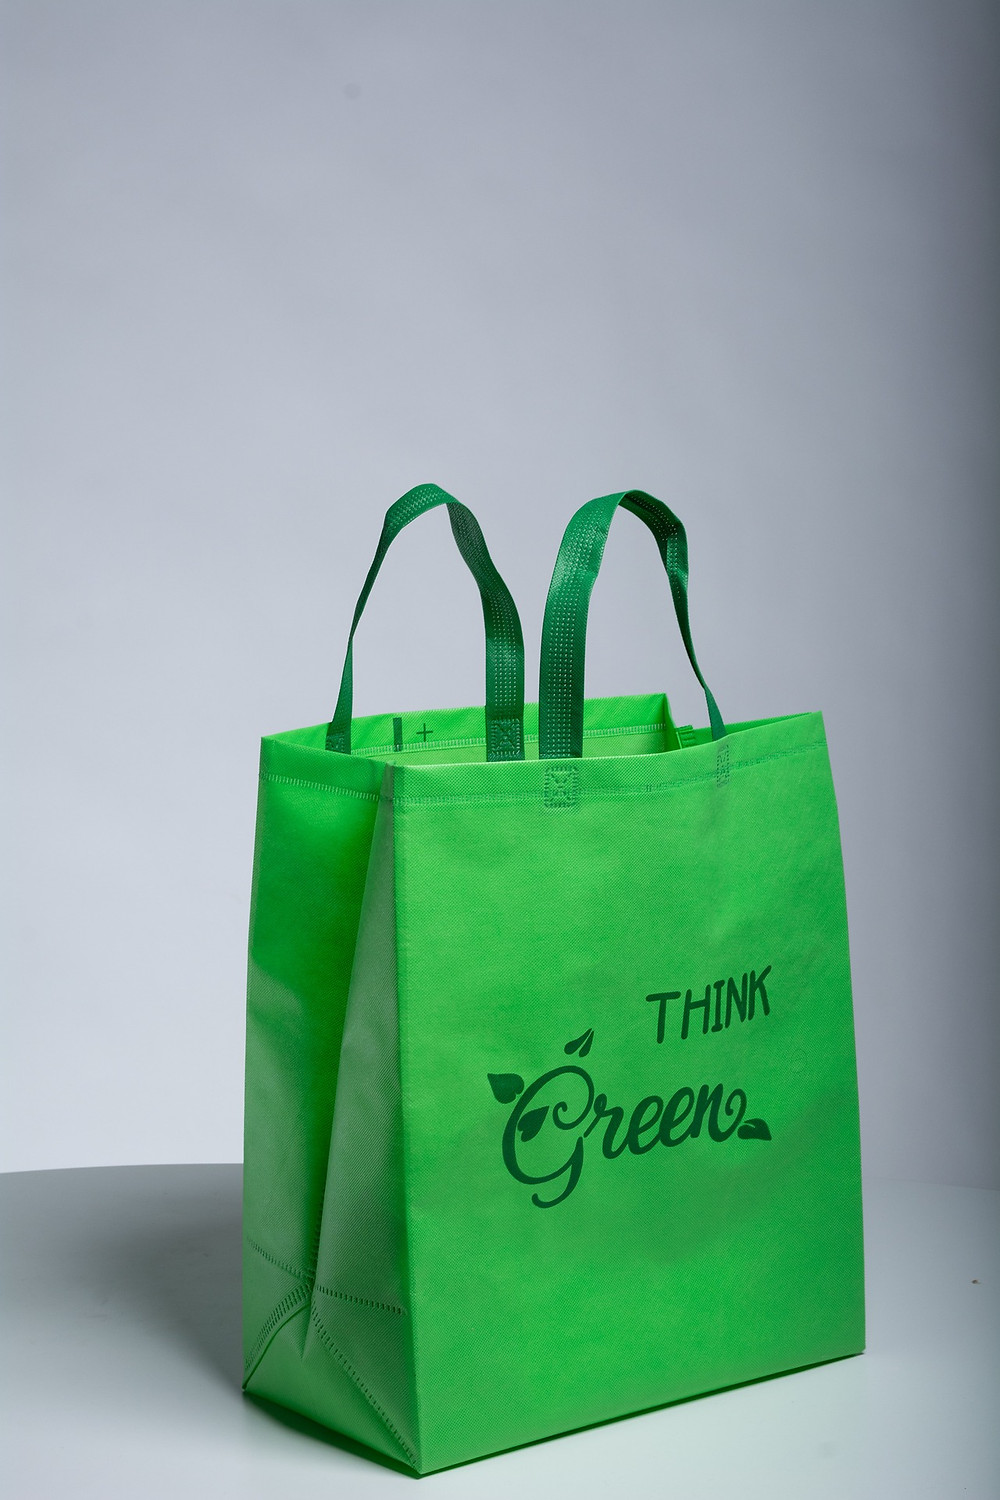 Go Green - Don't use Biodegradable Plastic Products